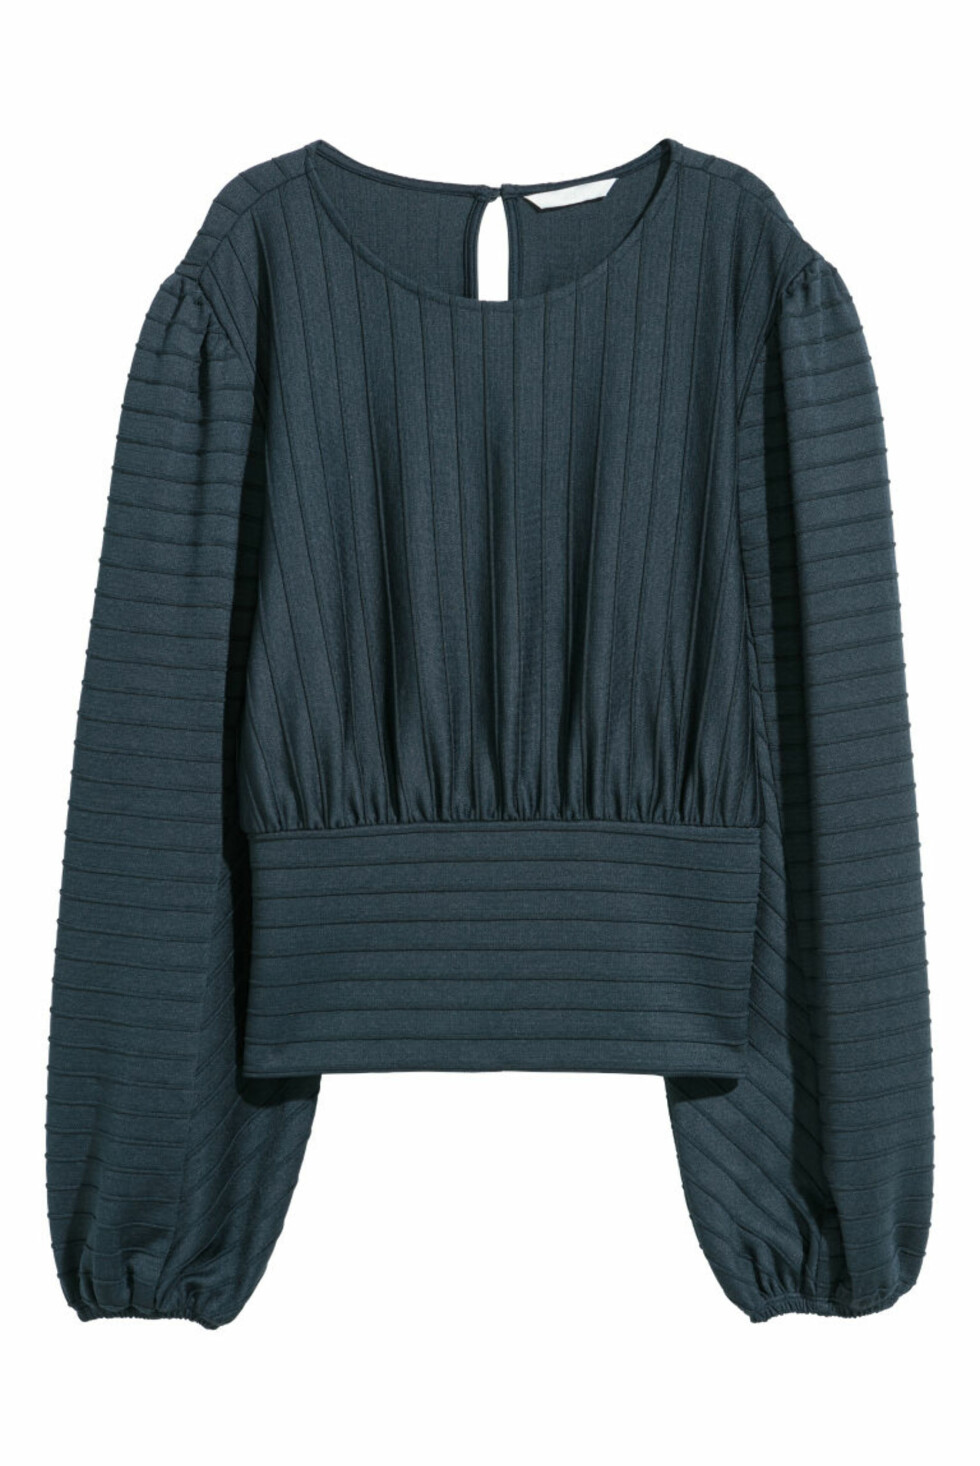 <strong>Topp fra H&M |149,-| http:</strong>//www2.hm.com/no_no/productpage.0601181003.html